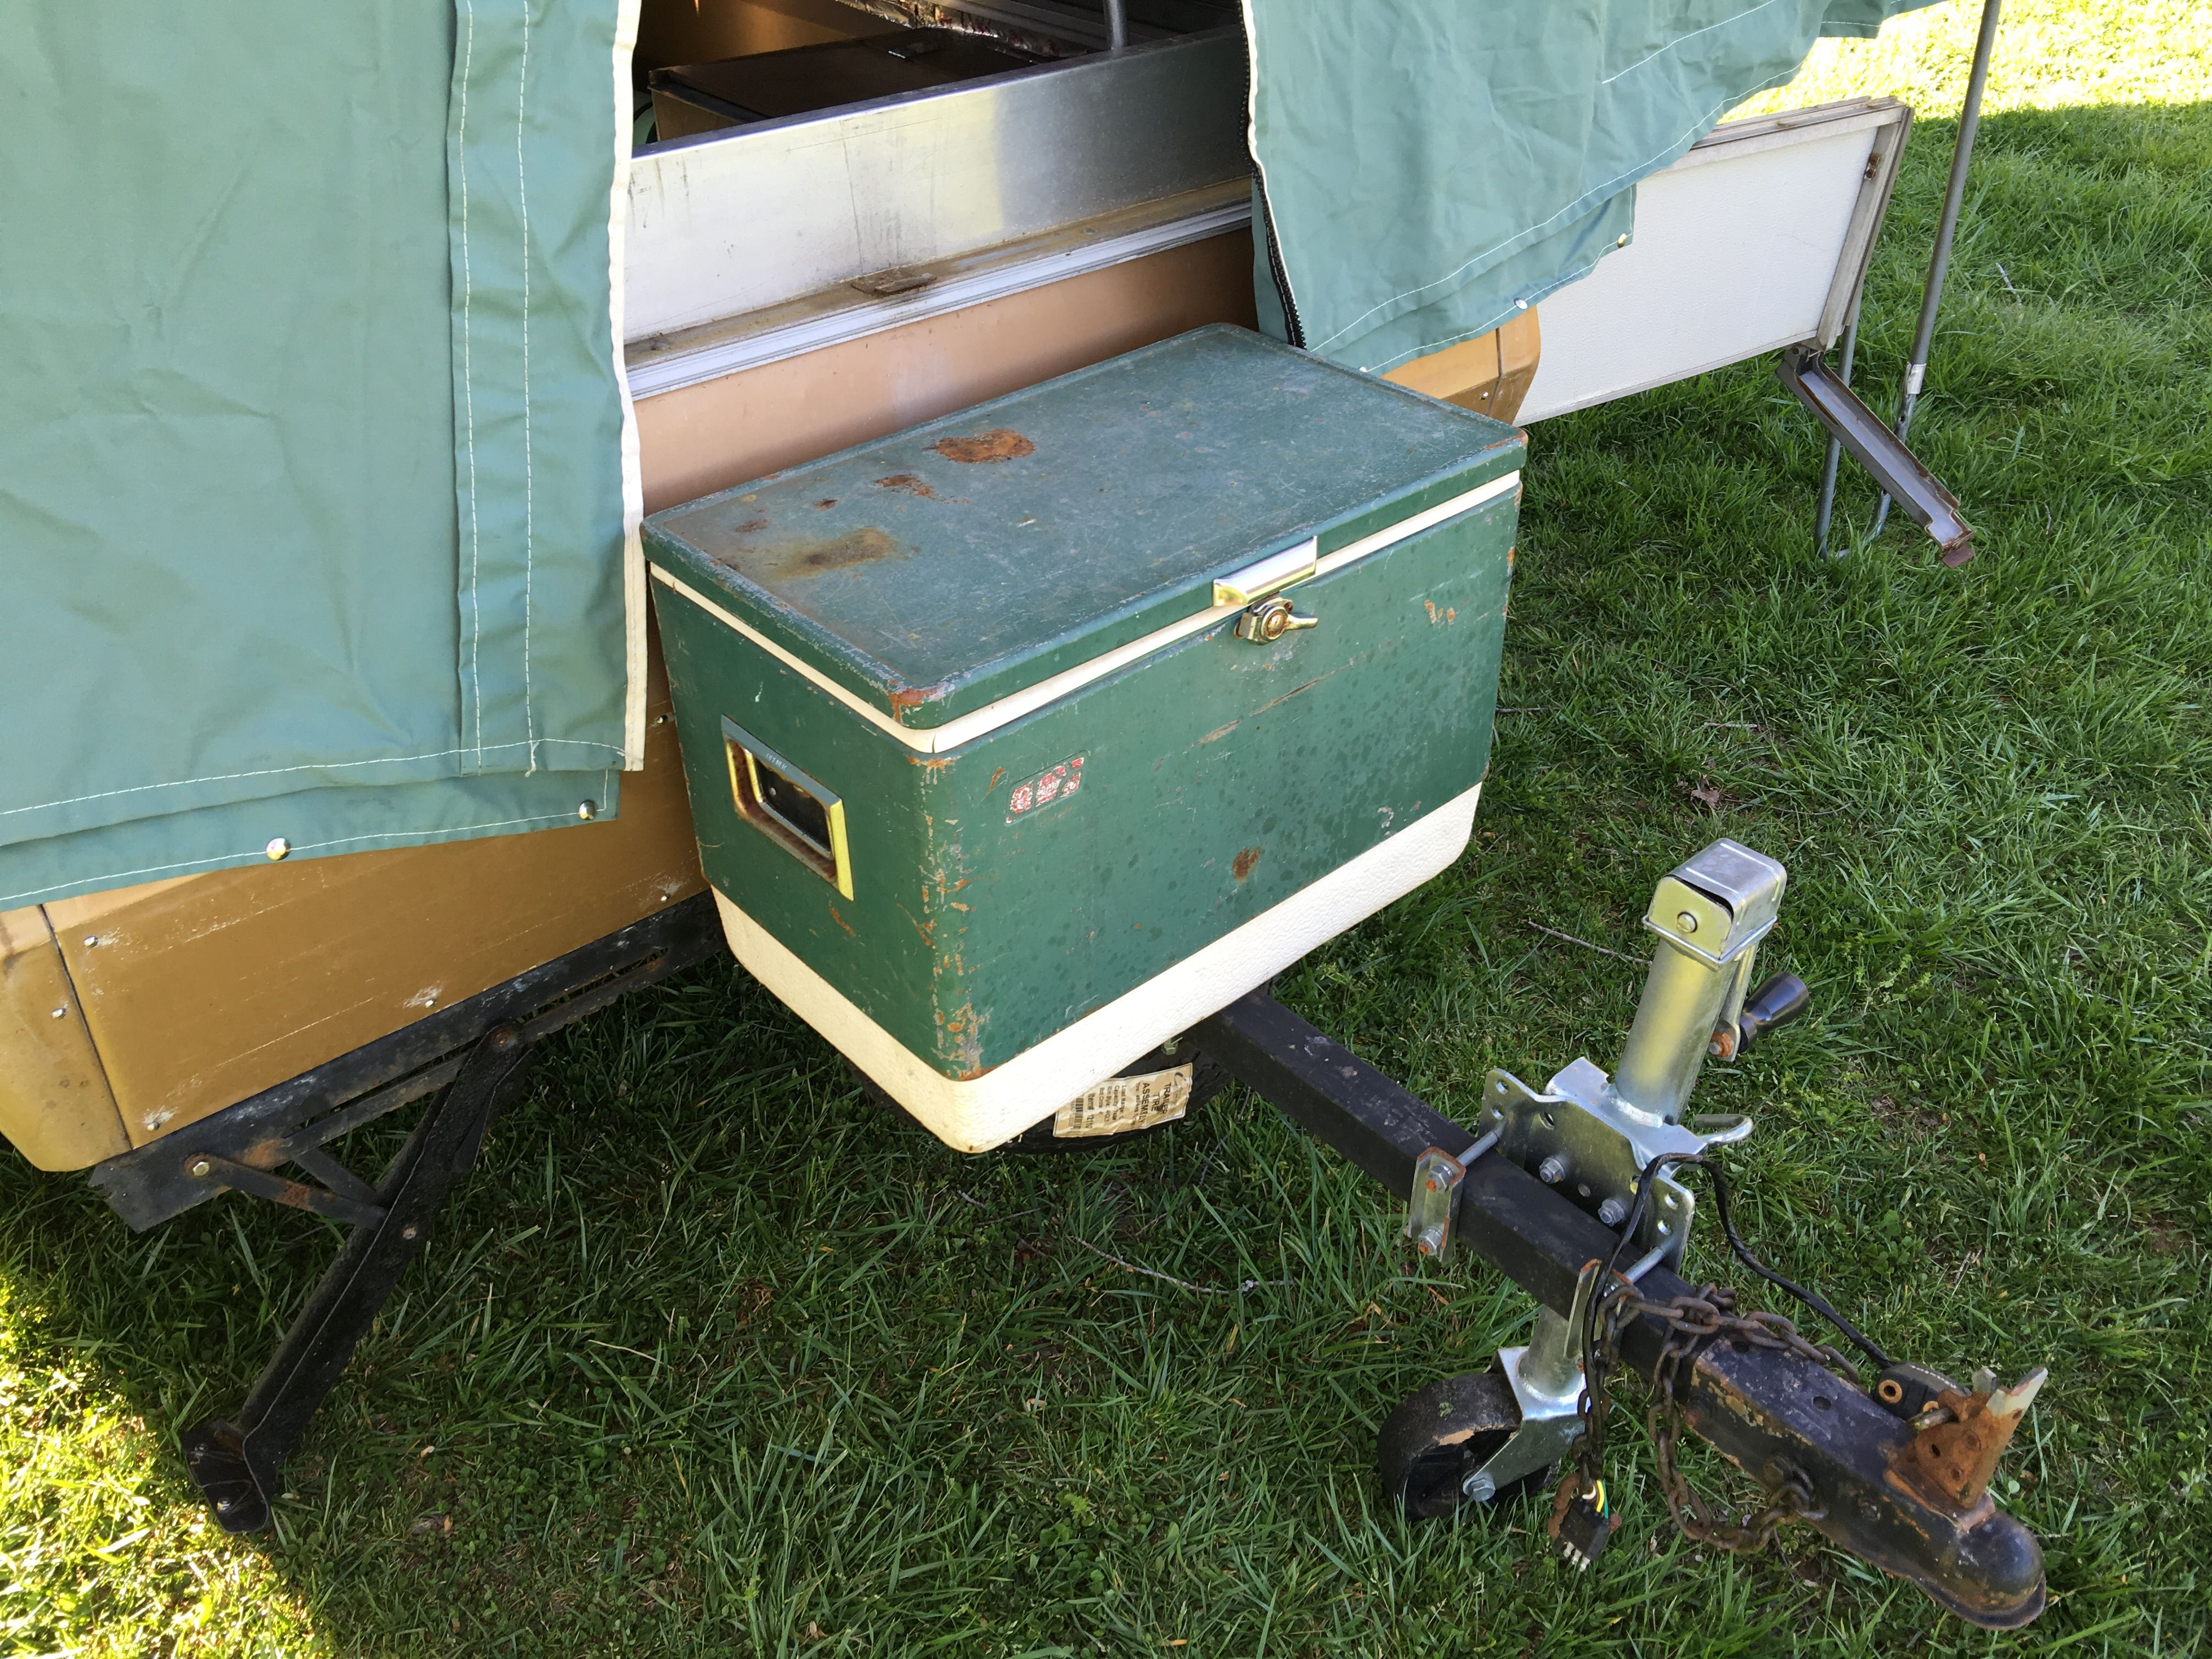 69 apache eagle old cooler covers ac open lid when in use camping stuffcoolerstentcamperrveagles